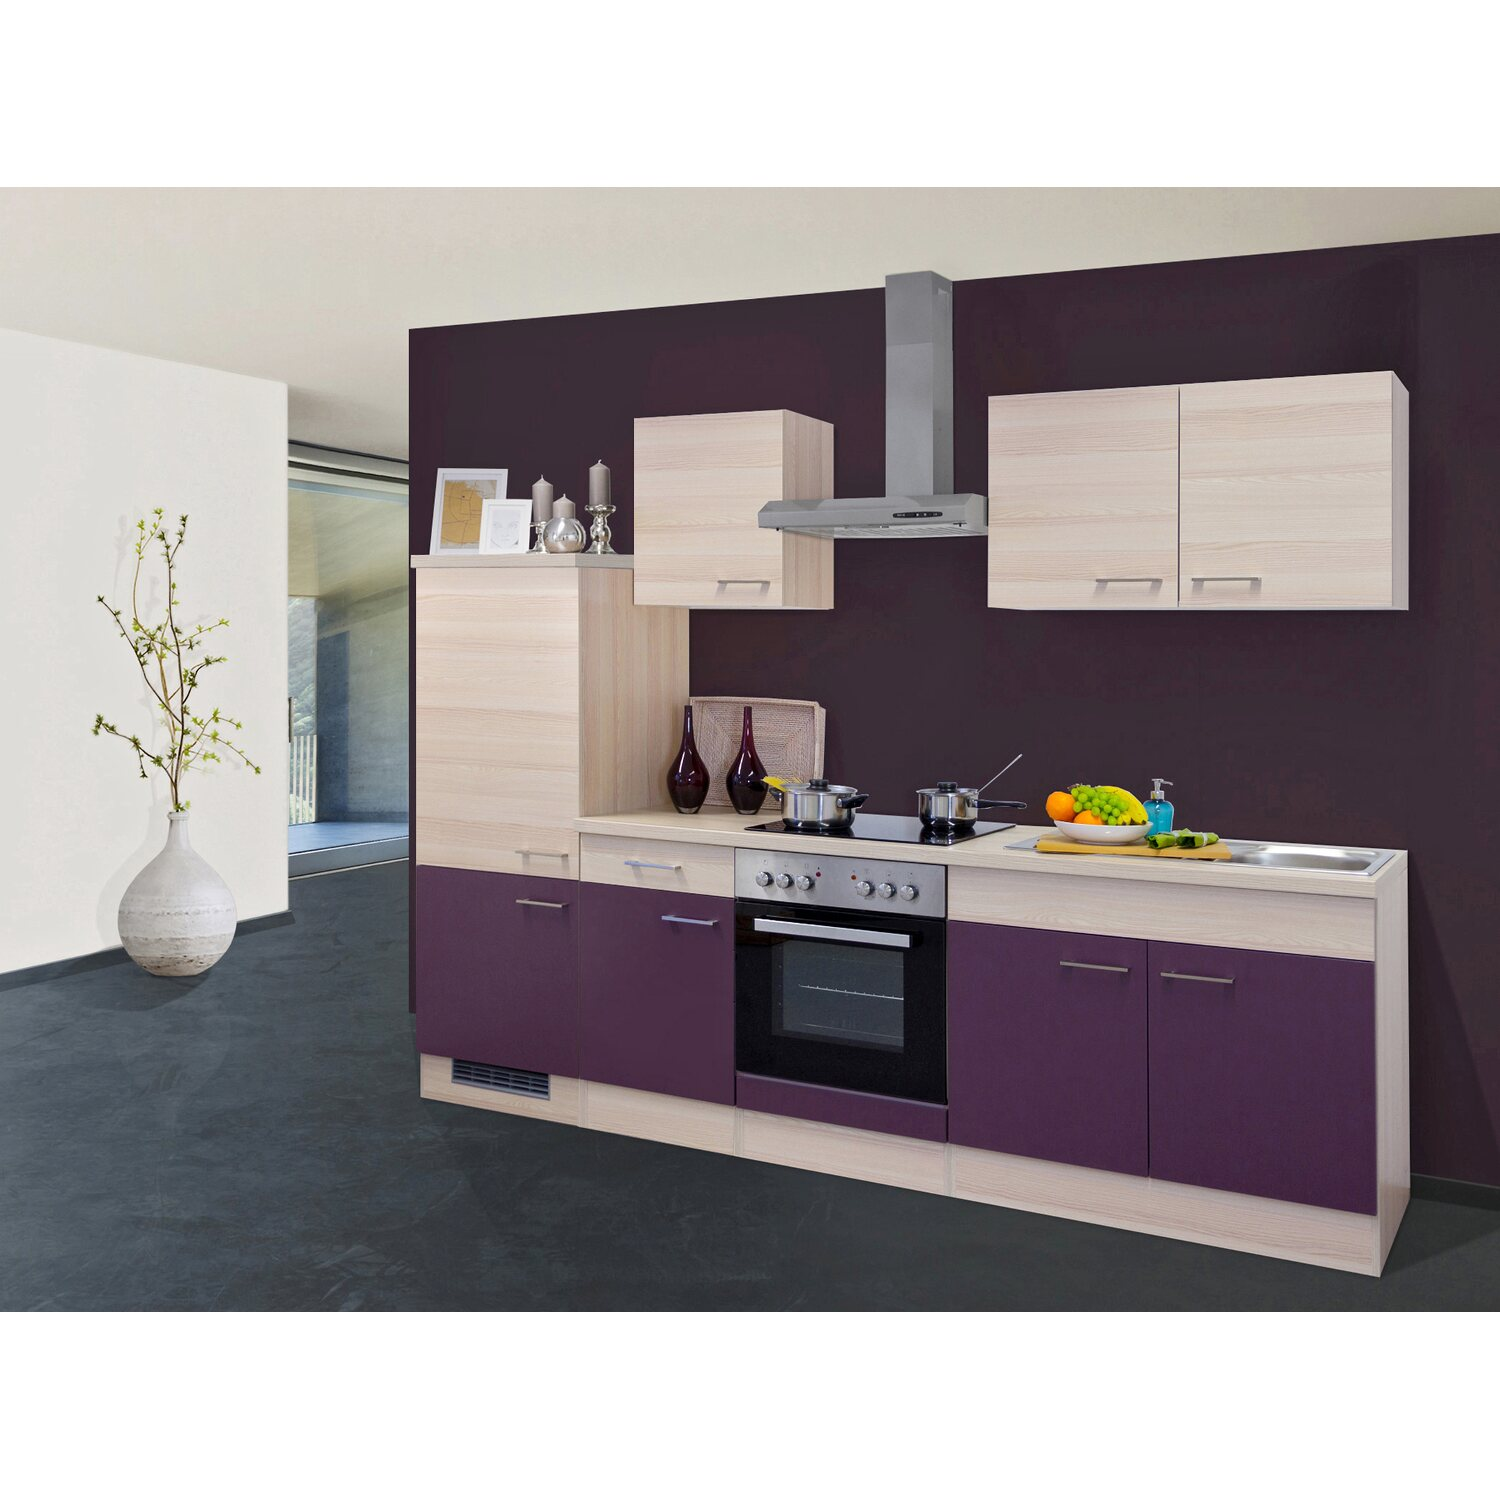 flex well exclusiv k chenzeile focus 270 cm akazie aubergine kaufen bei obi. Black Bedroom Furniture Sets. Home Design Ideas